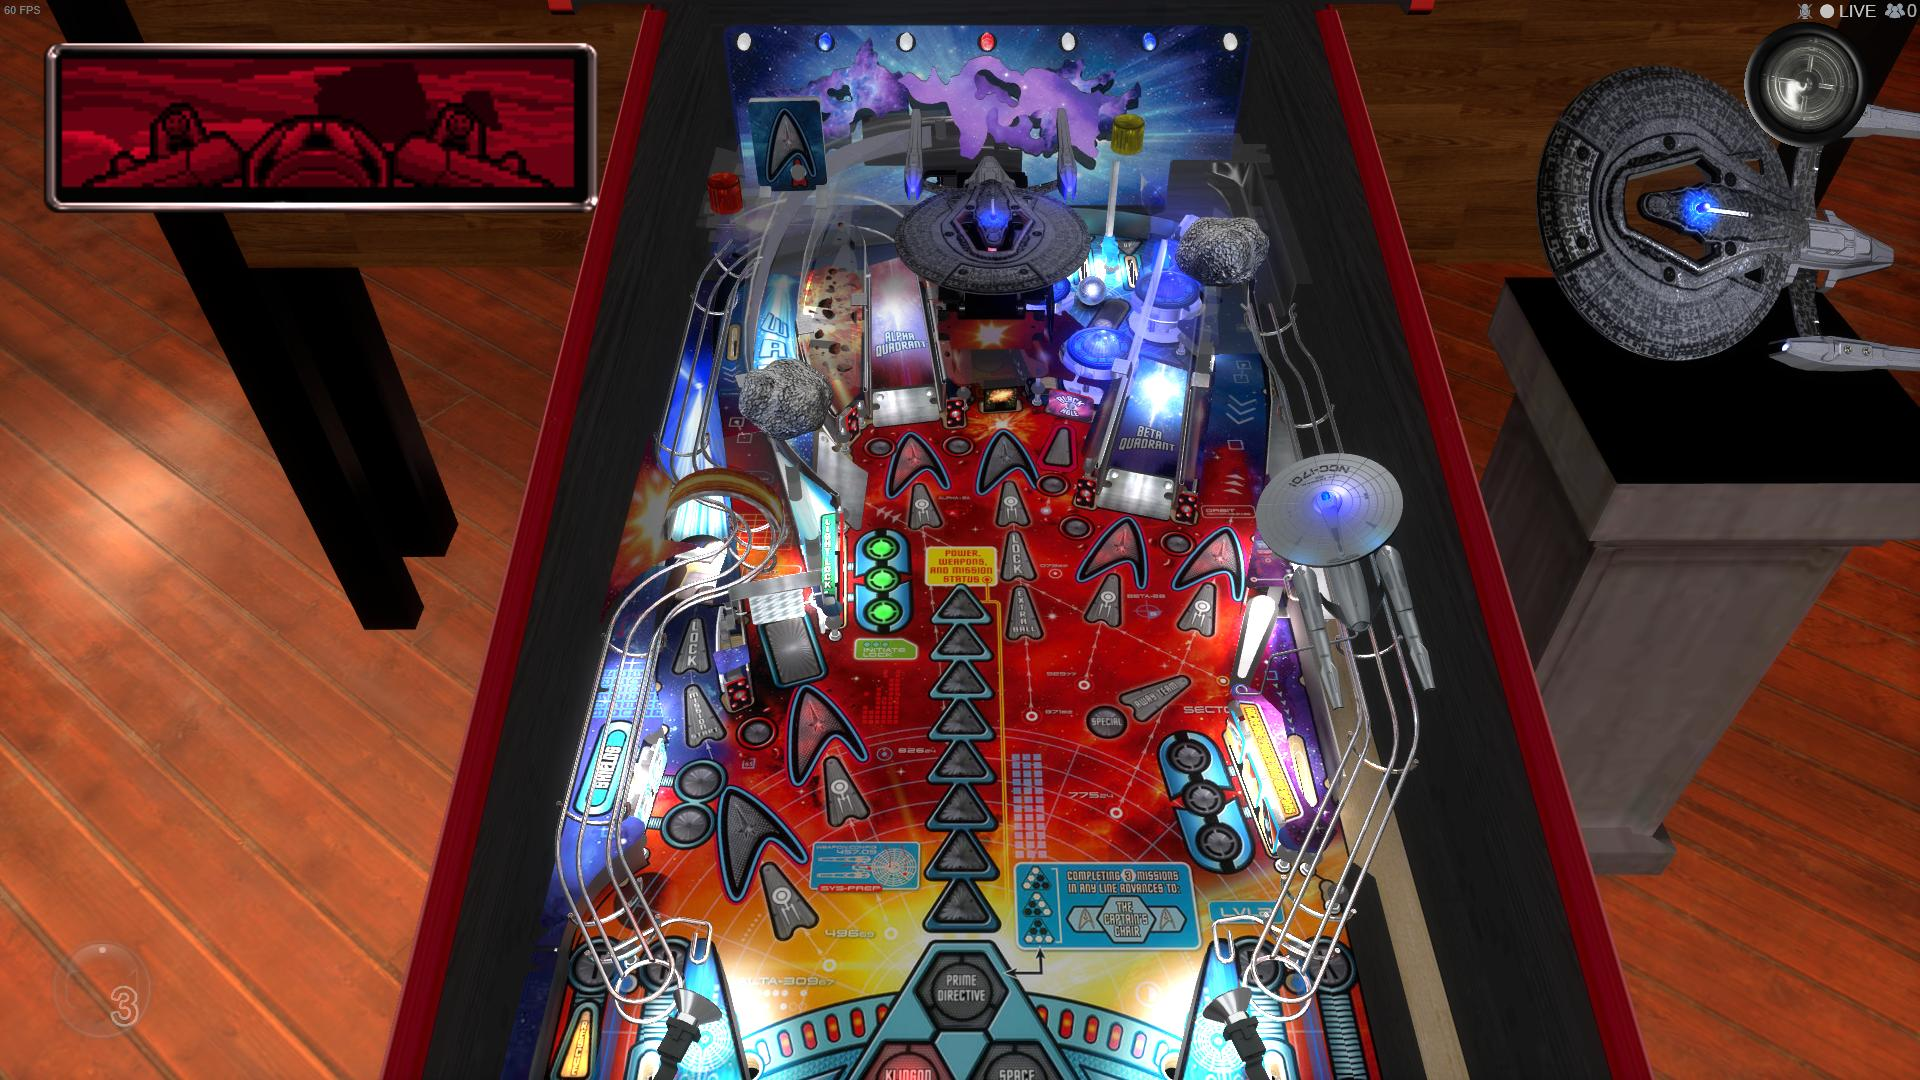 Stern Pinball Arcade: Star Trek Screenshot 3